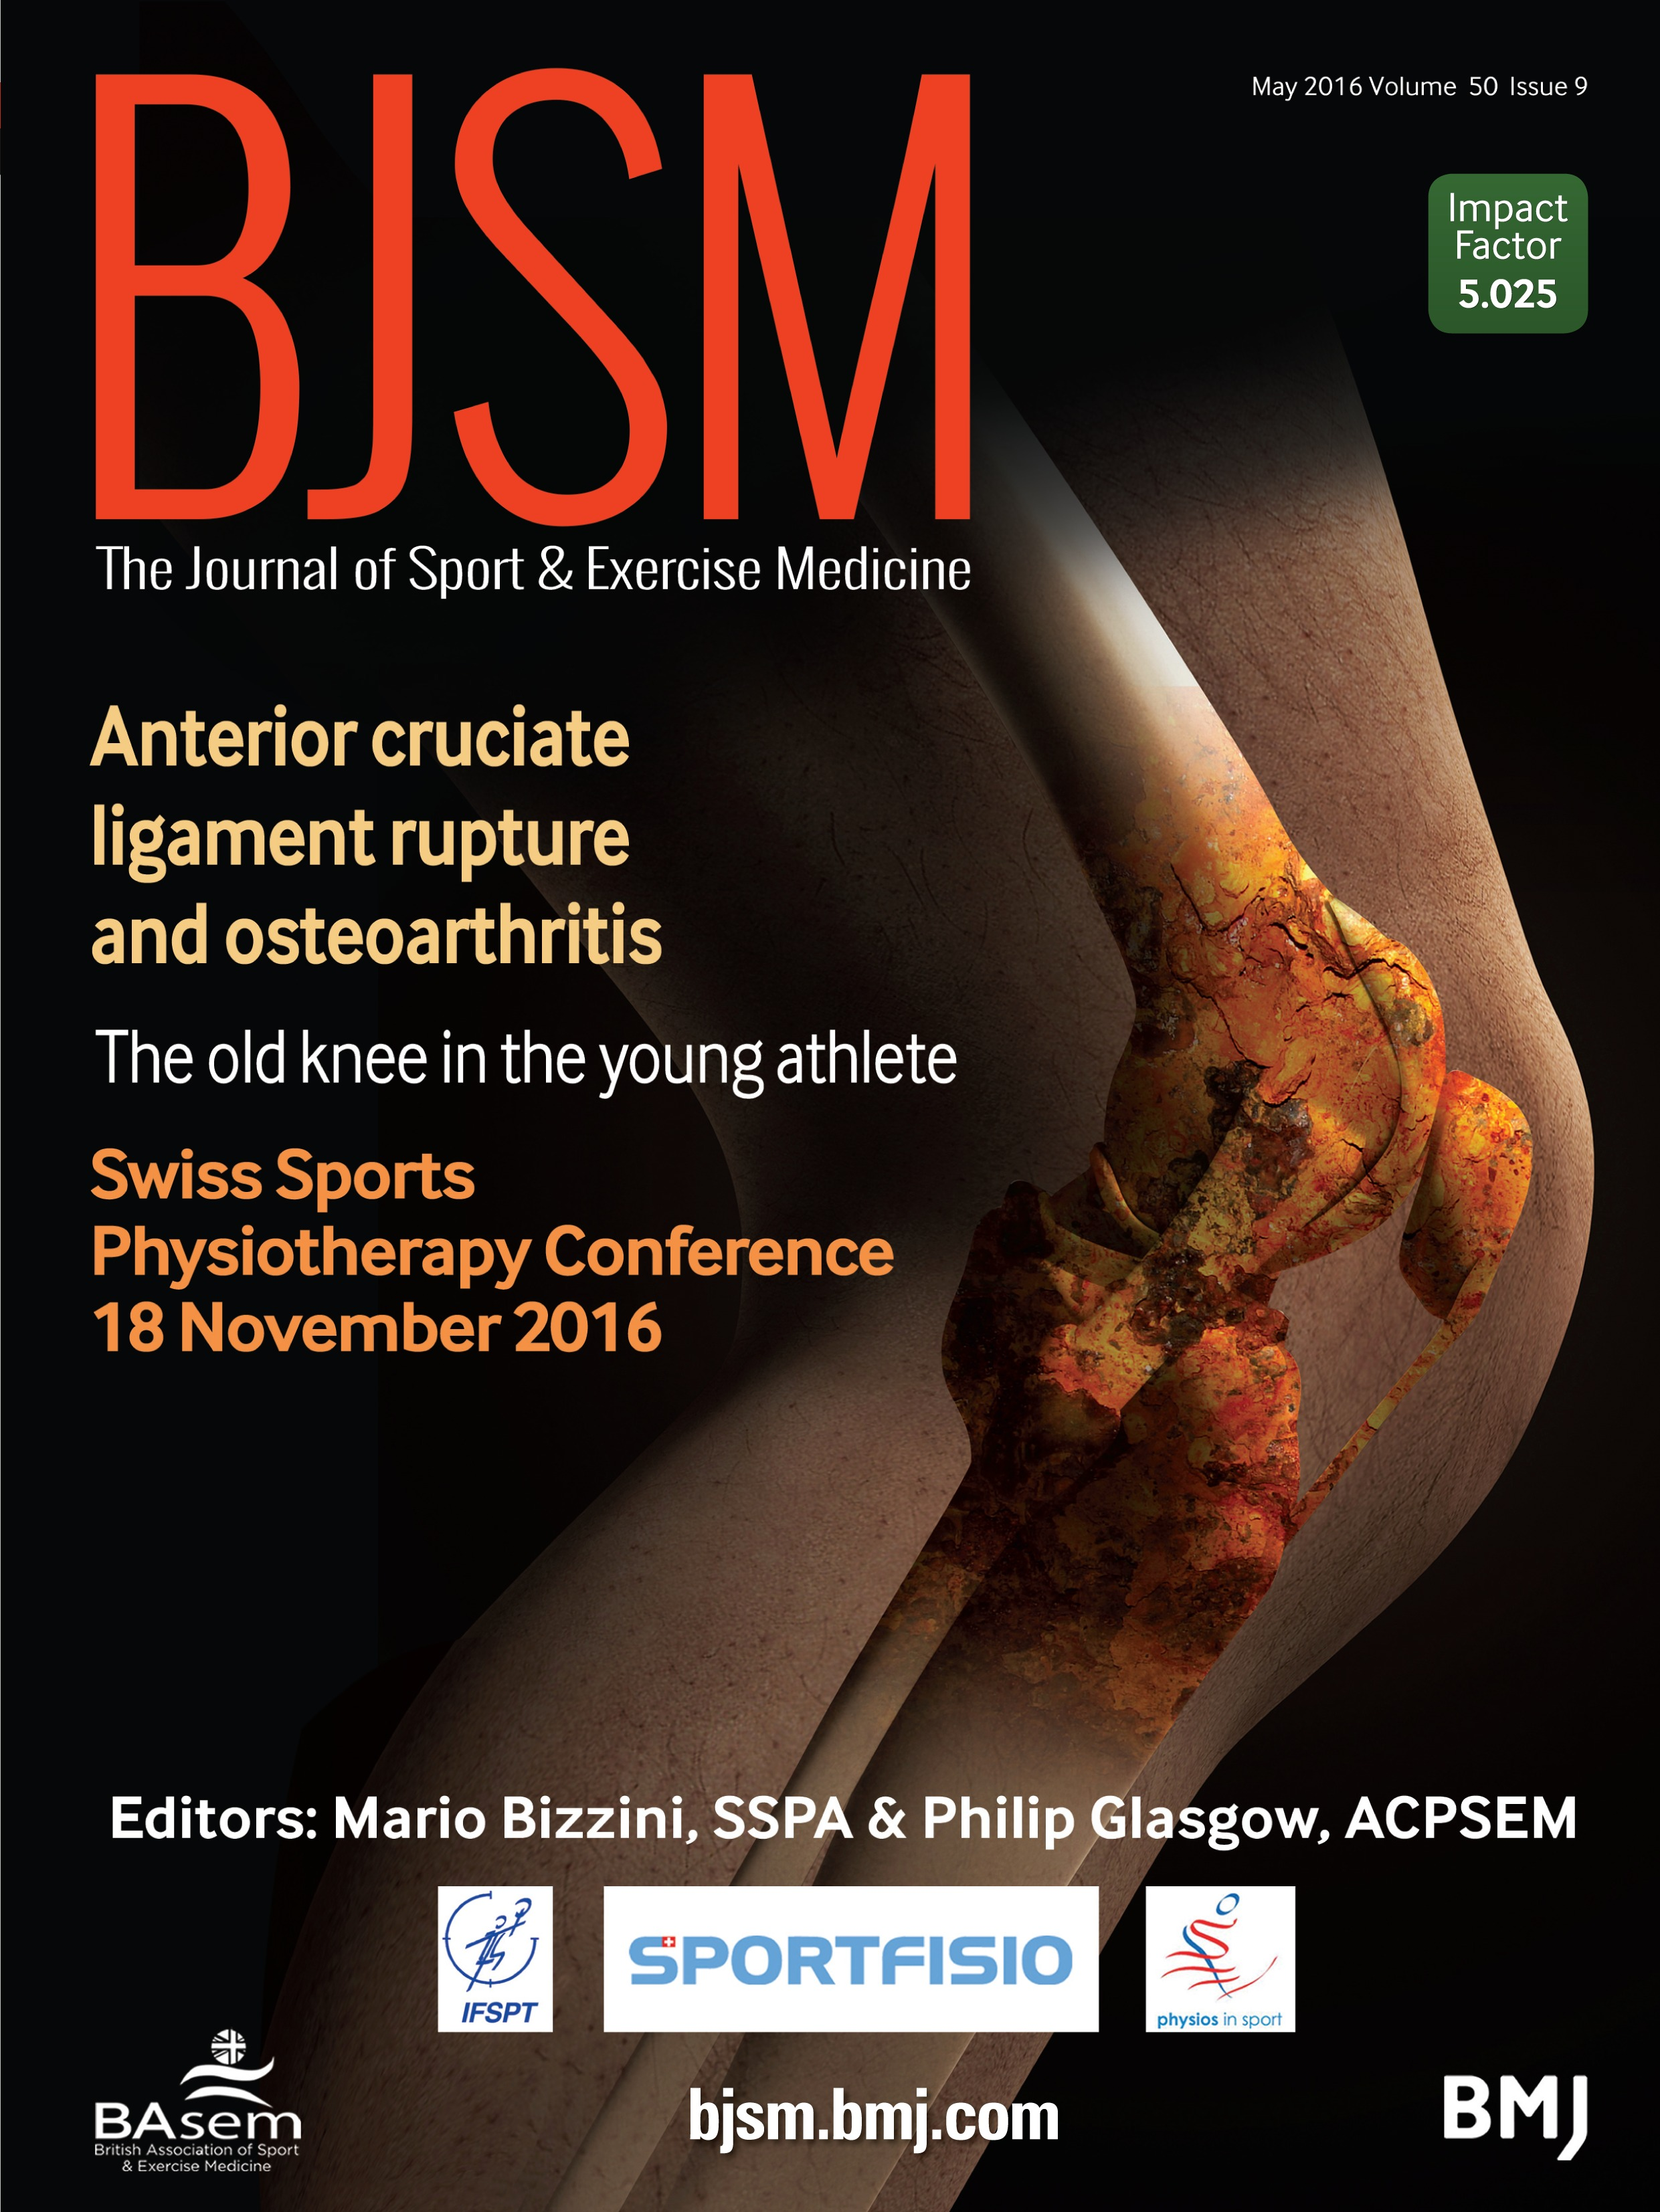 sports medicine Volume 41 Issue 5 May 2011